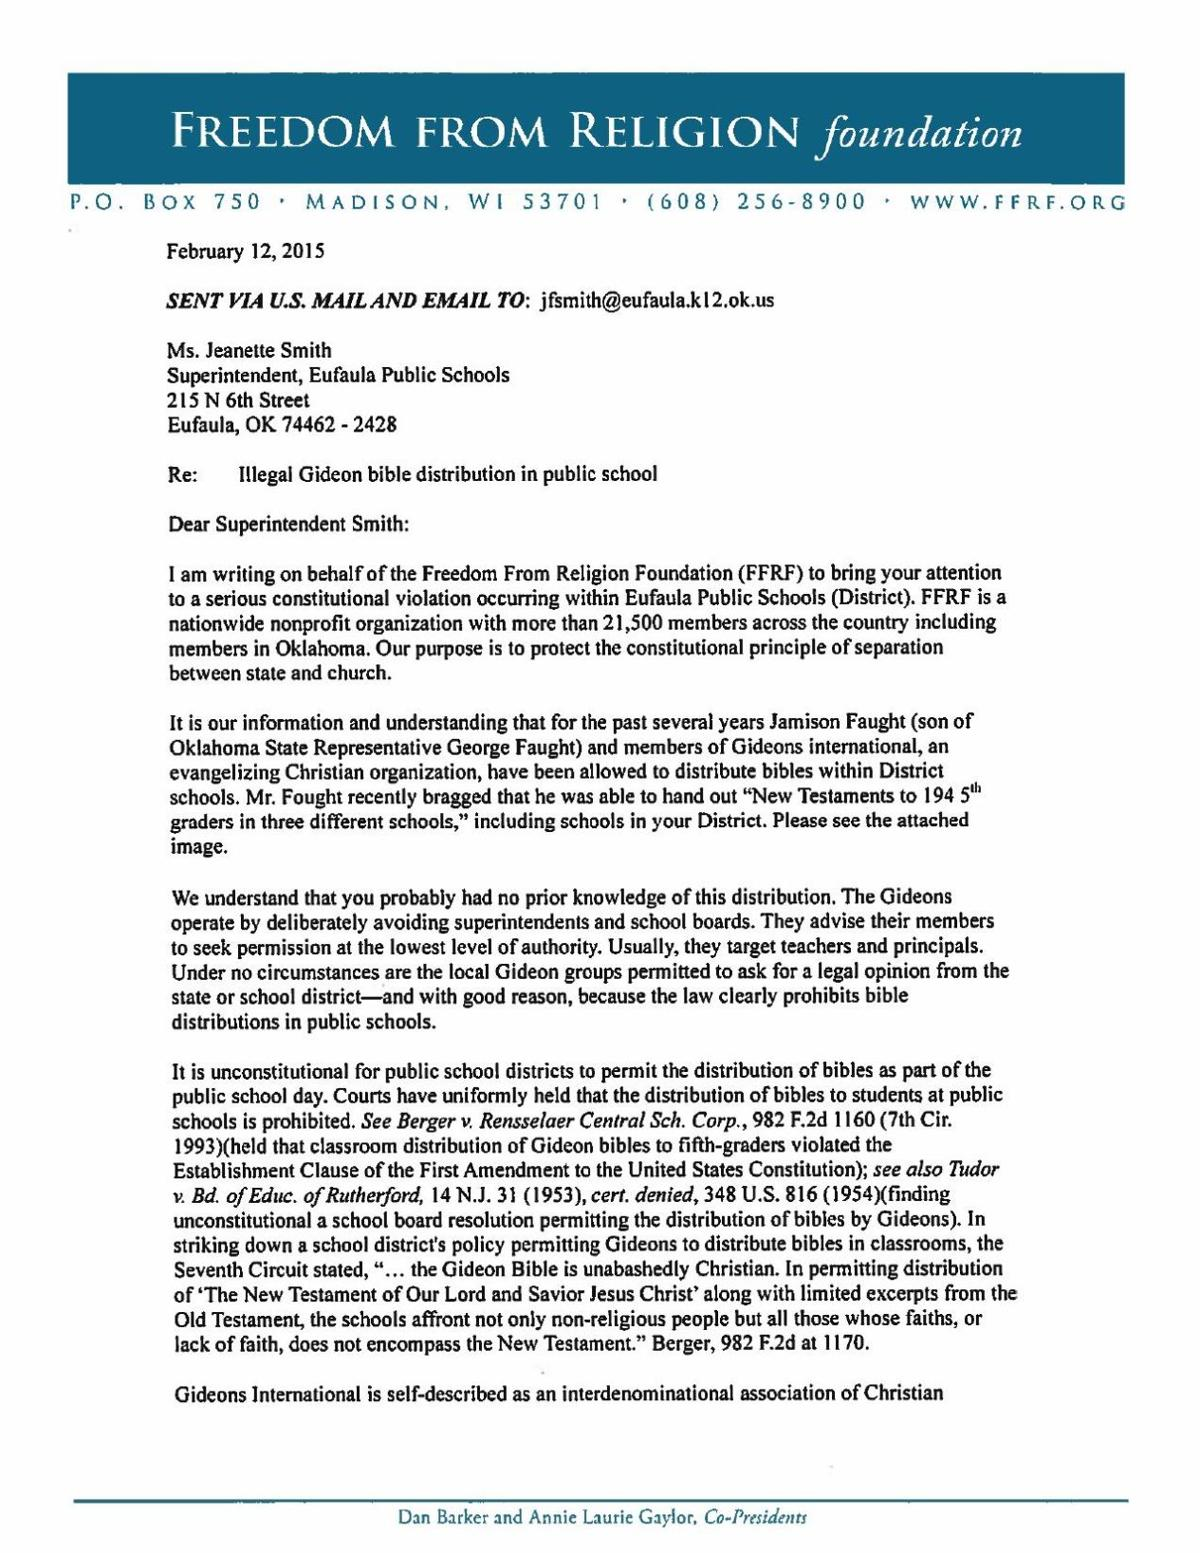 example of freedom from religion foundation u0026 39 s letter to